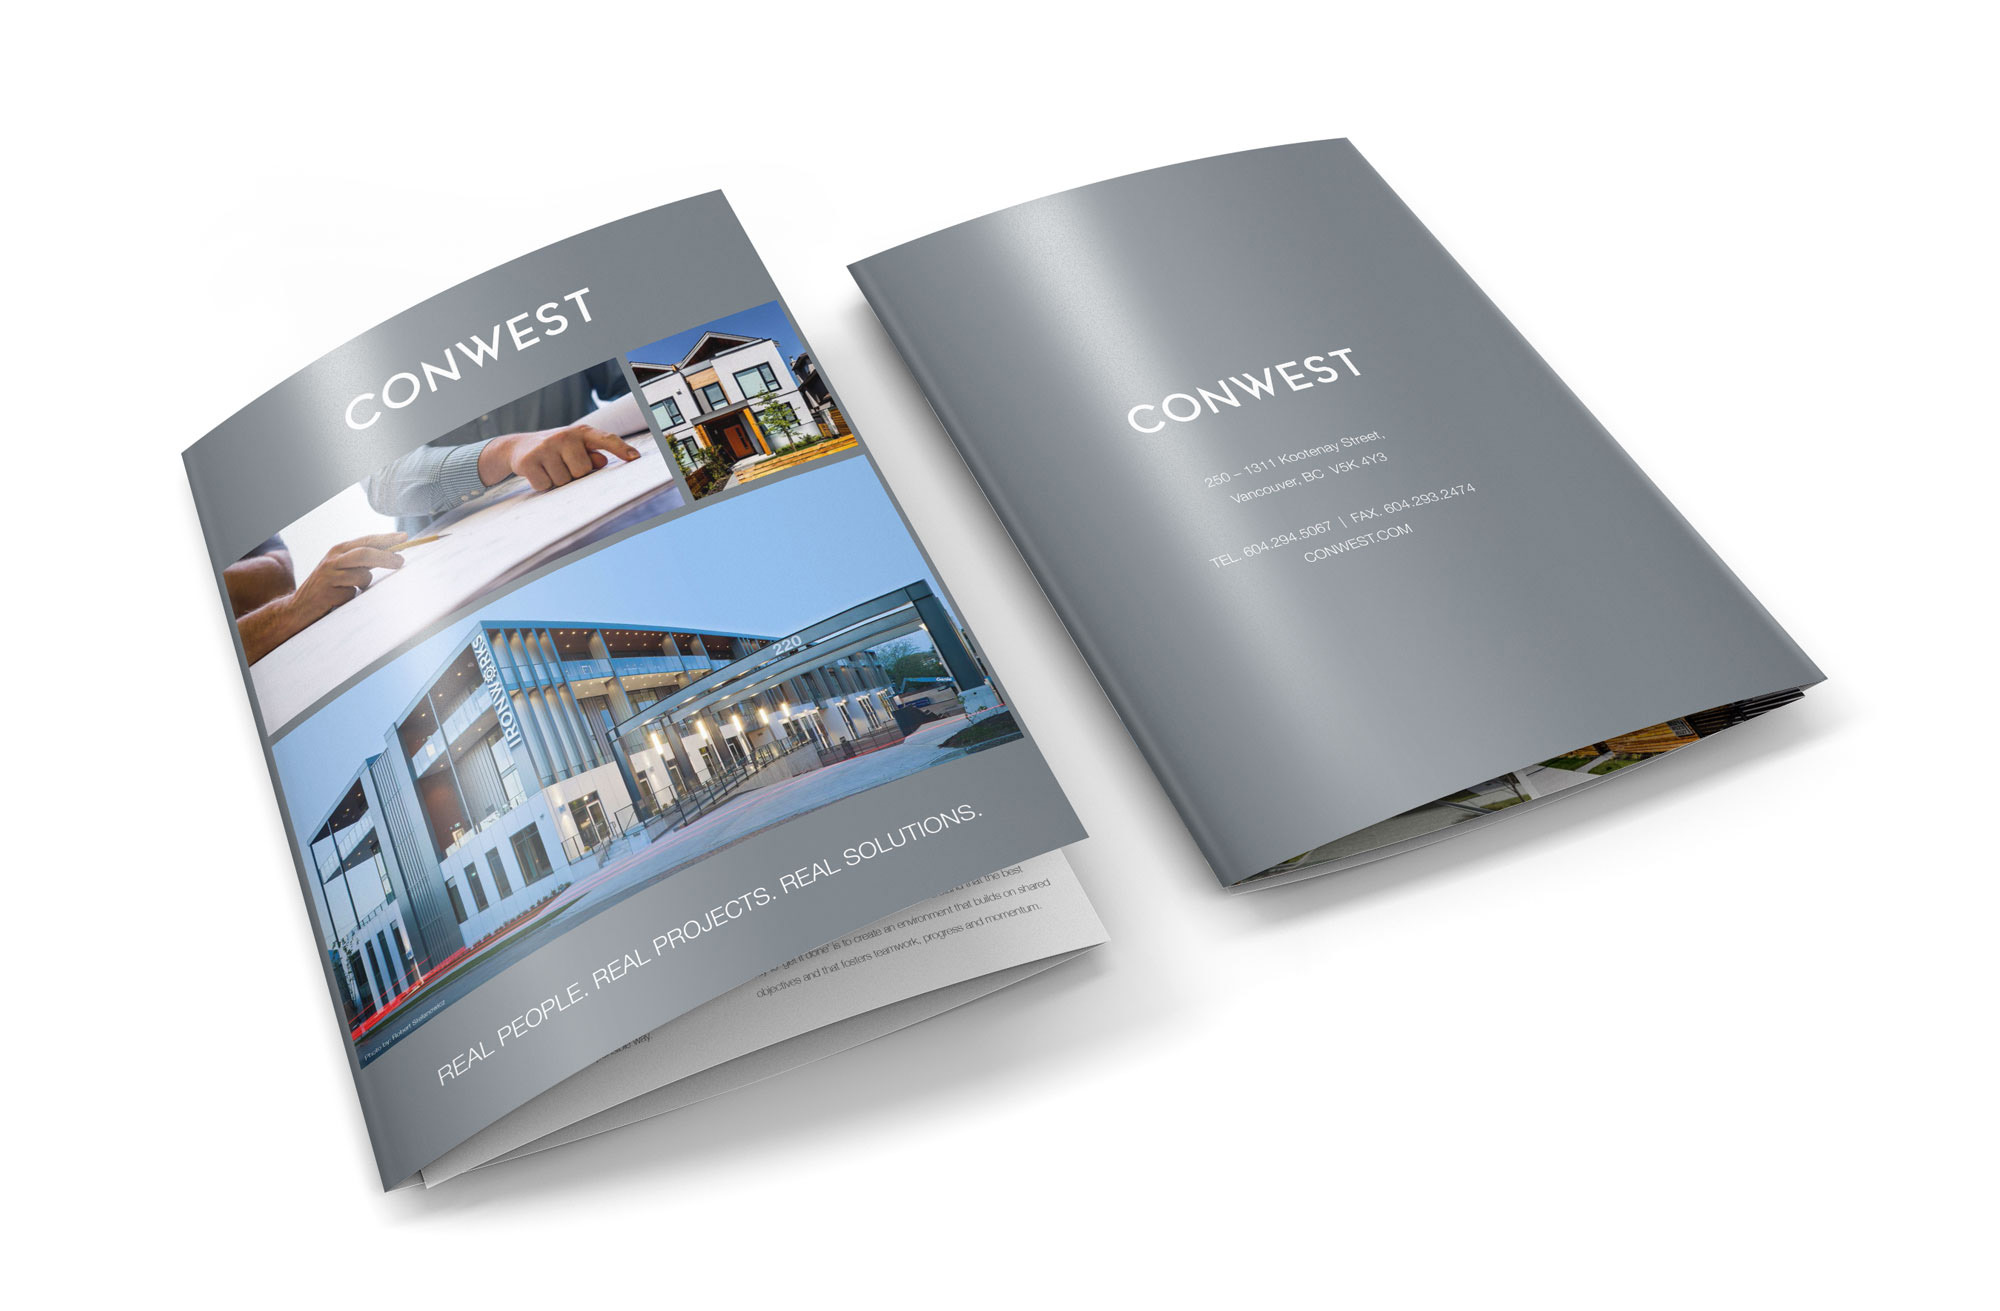 Conwest Group